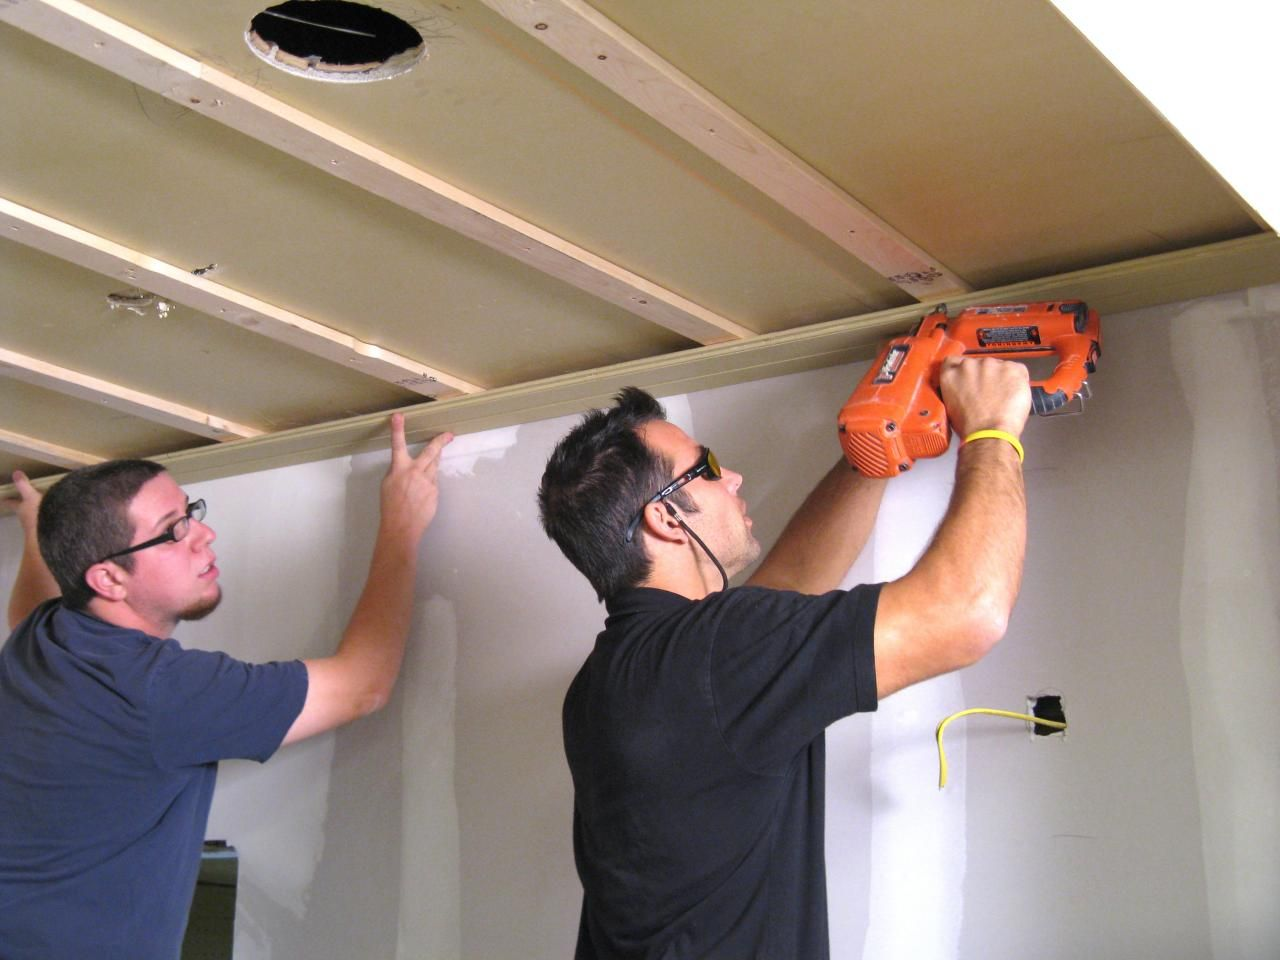 How to Install a TongueandGroove Plank Ceiling Plank